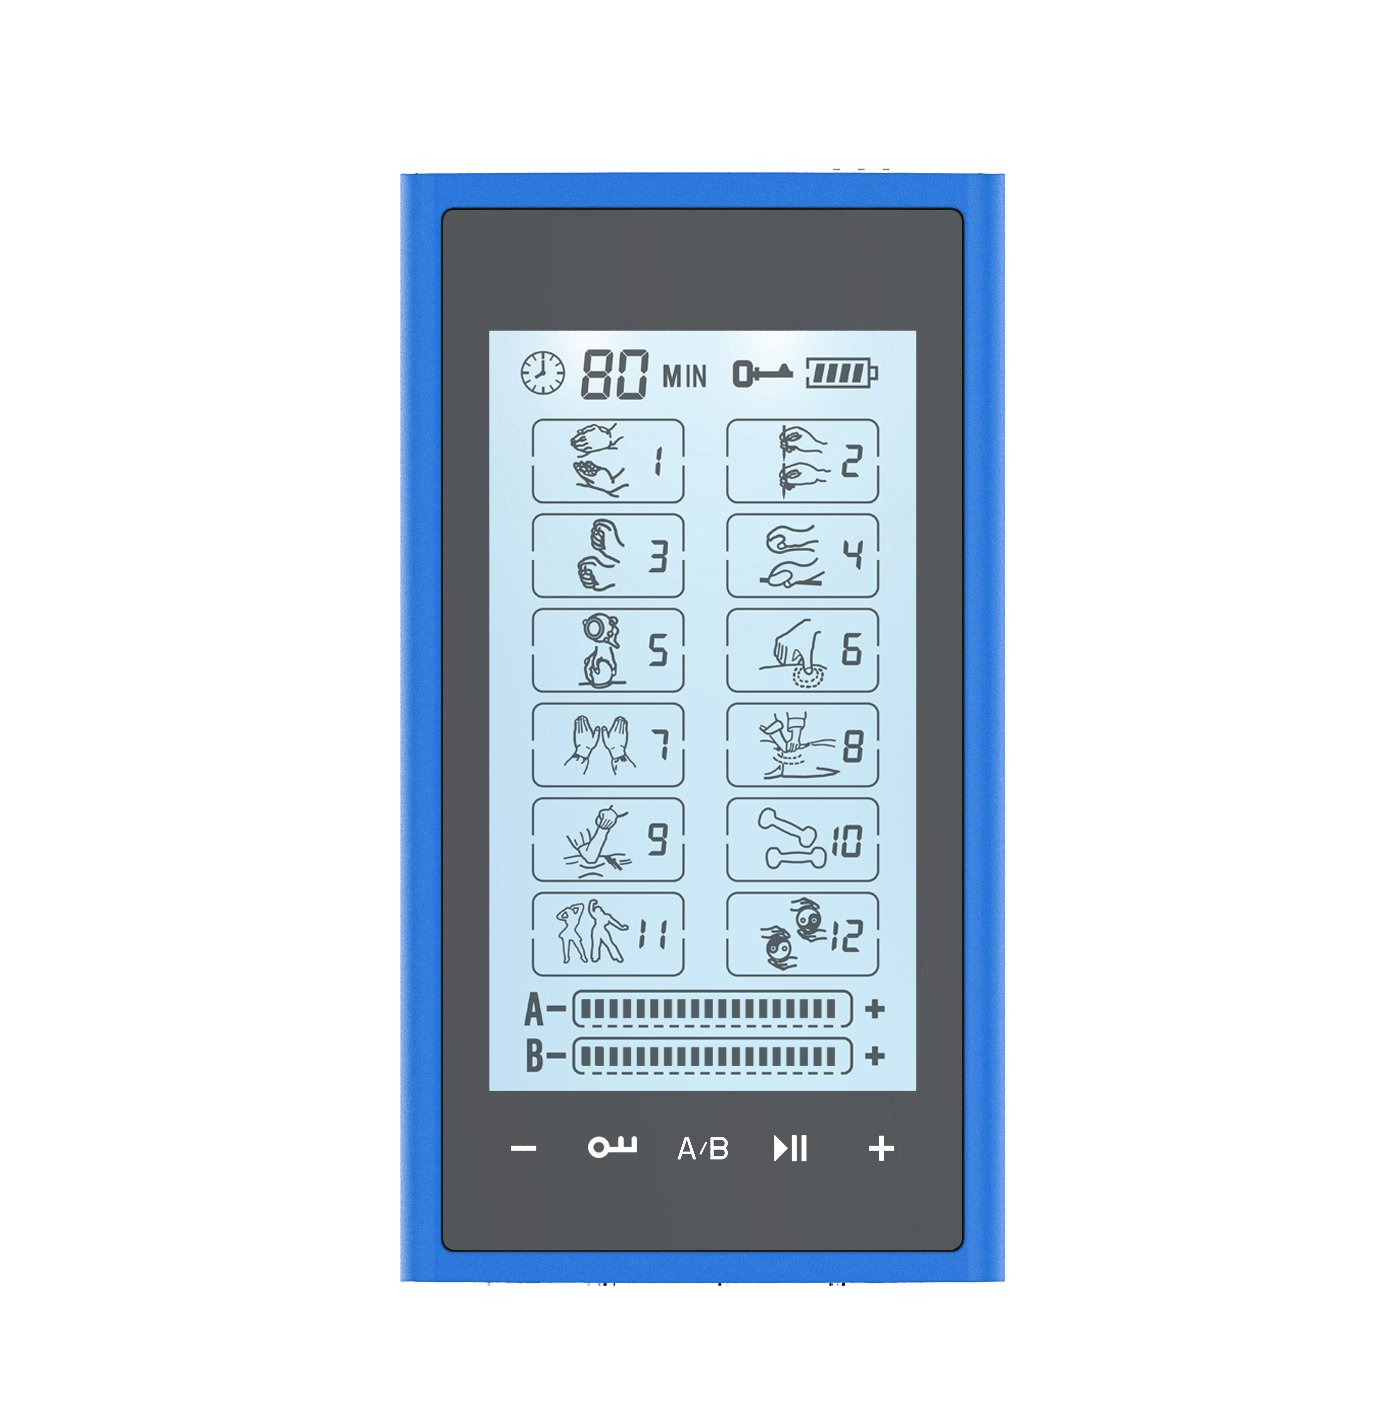 T12AB2 HealthmateForever TENS Unit Electrical Muscle Stimulator Blue in Black